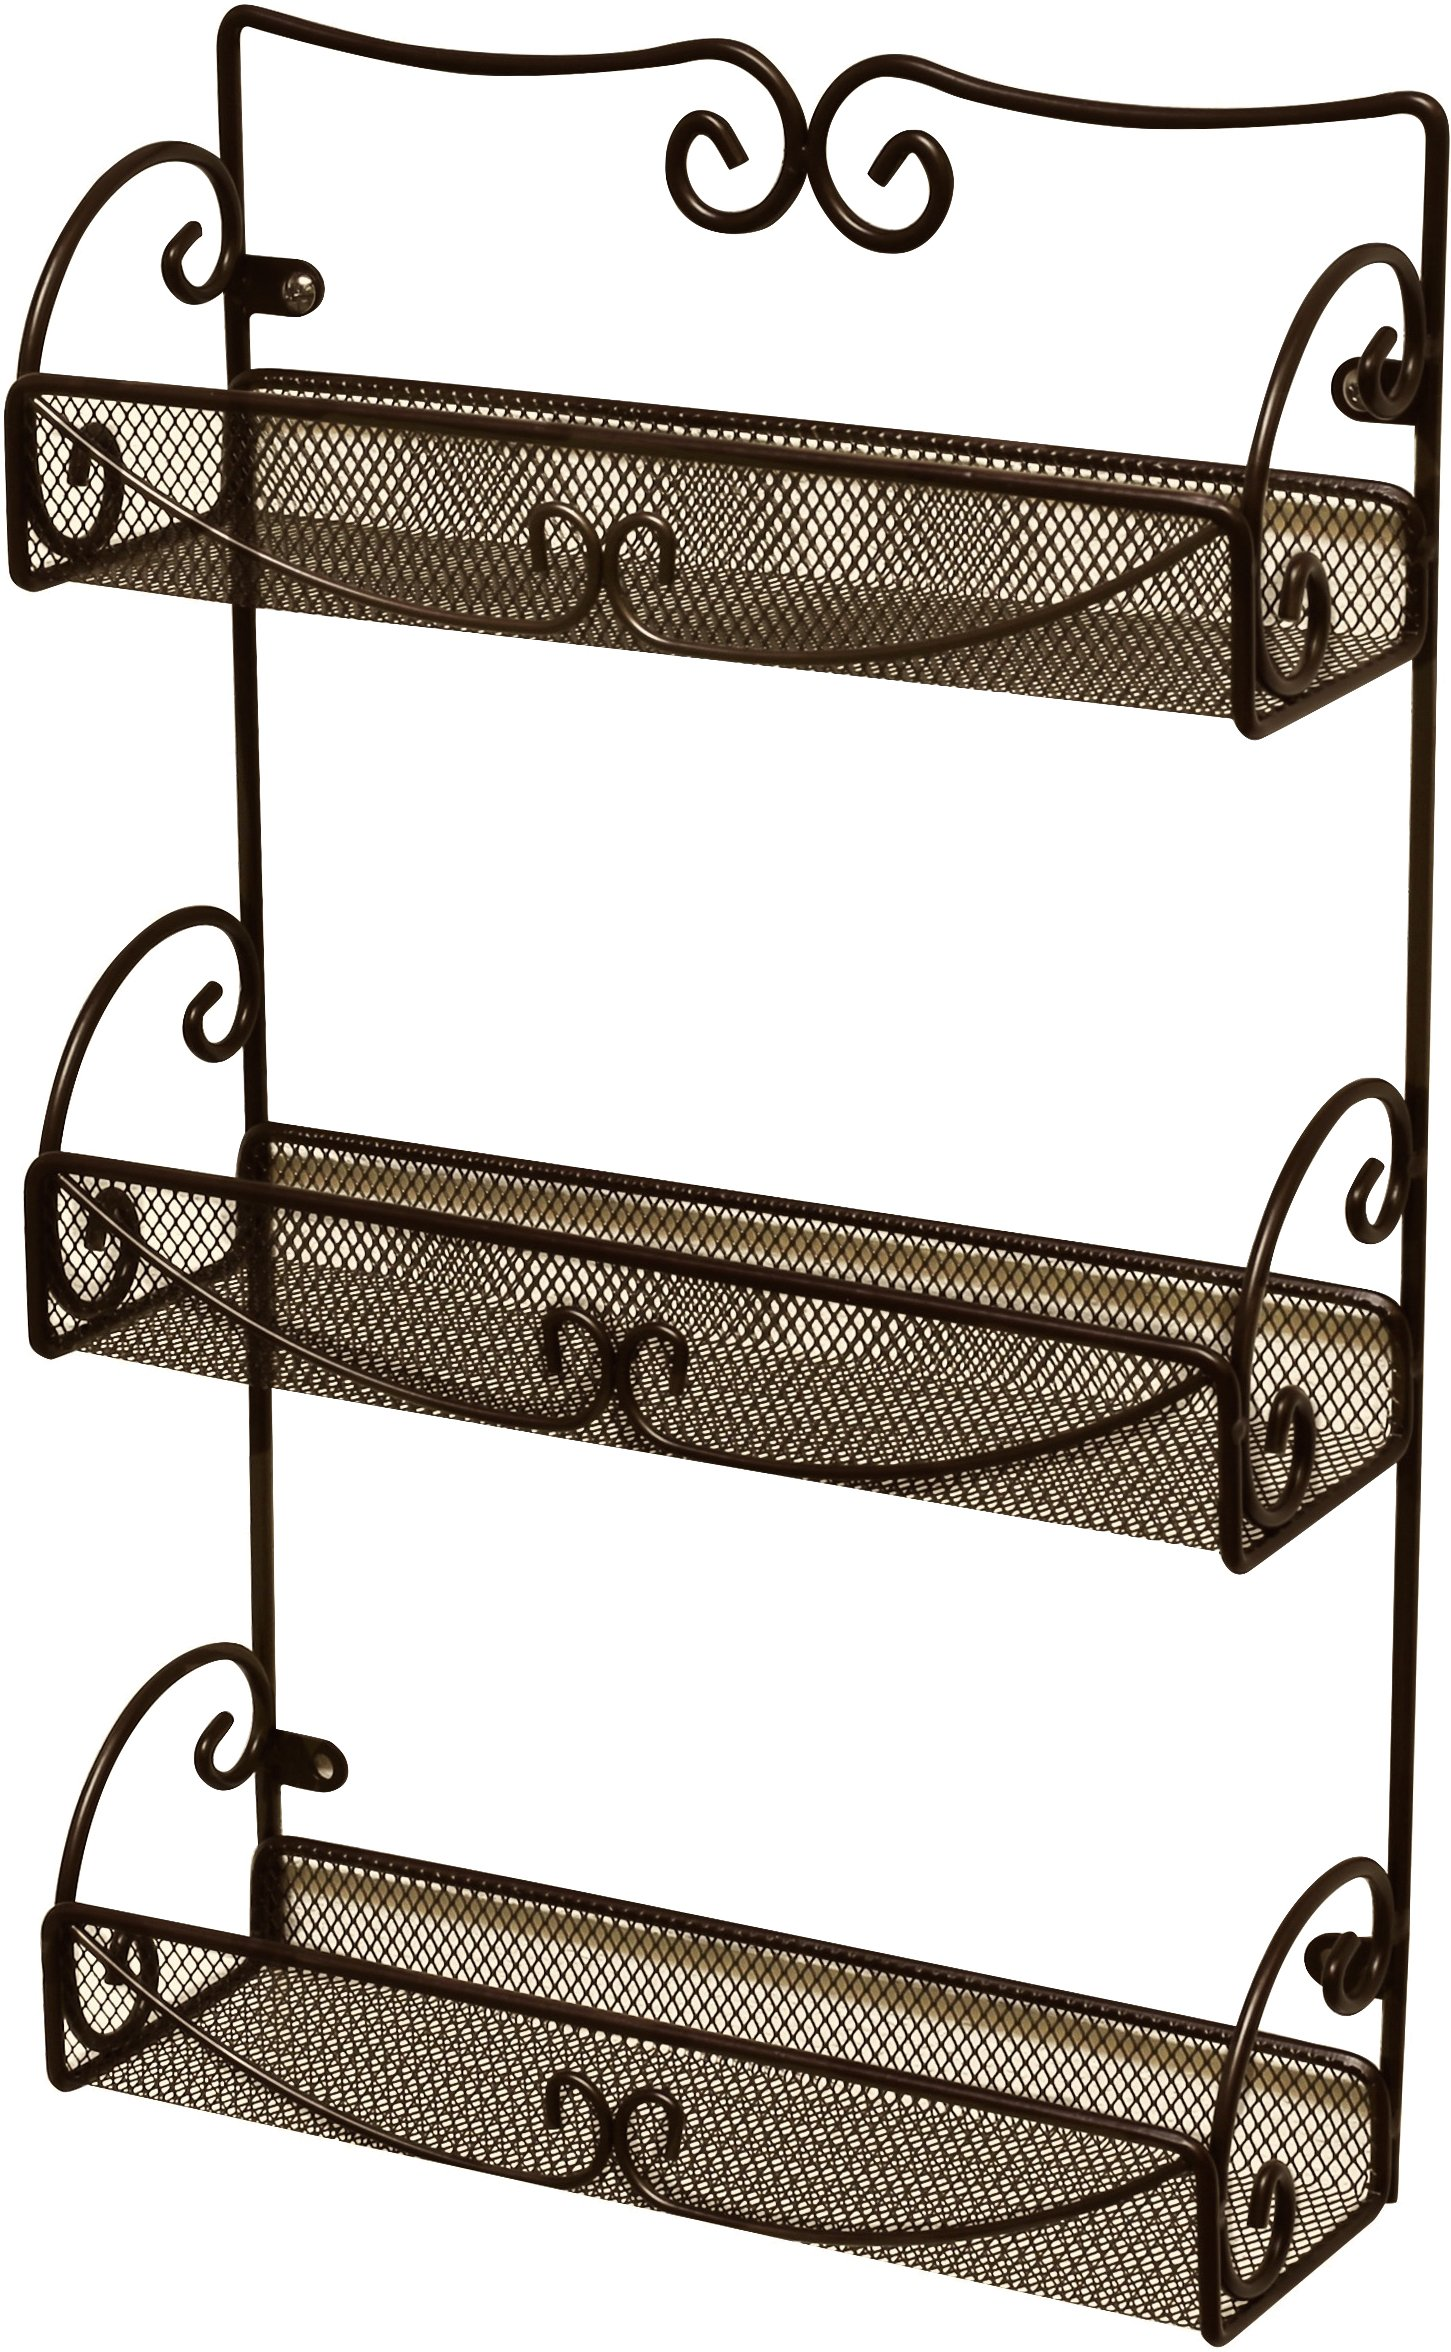 DecoBros 3 Tier Wall Mounted Spice Rack, Bronze by Deco Brothers